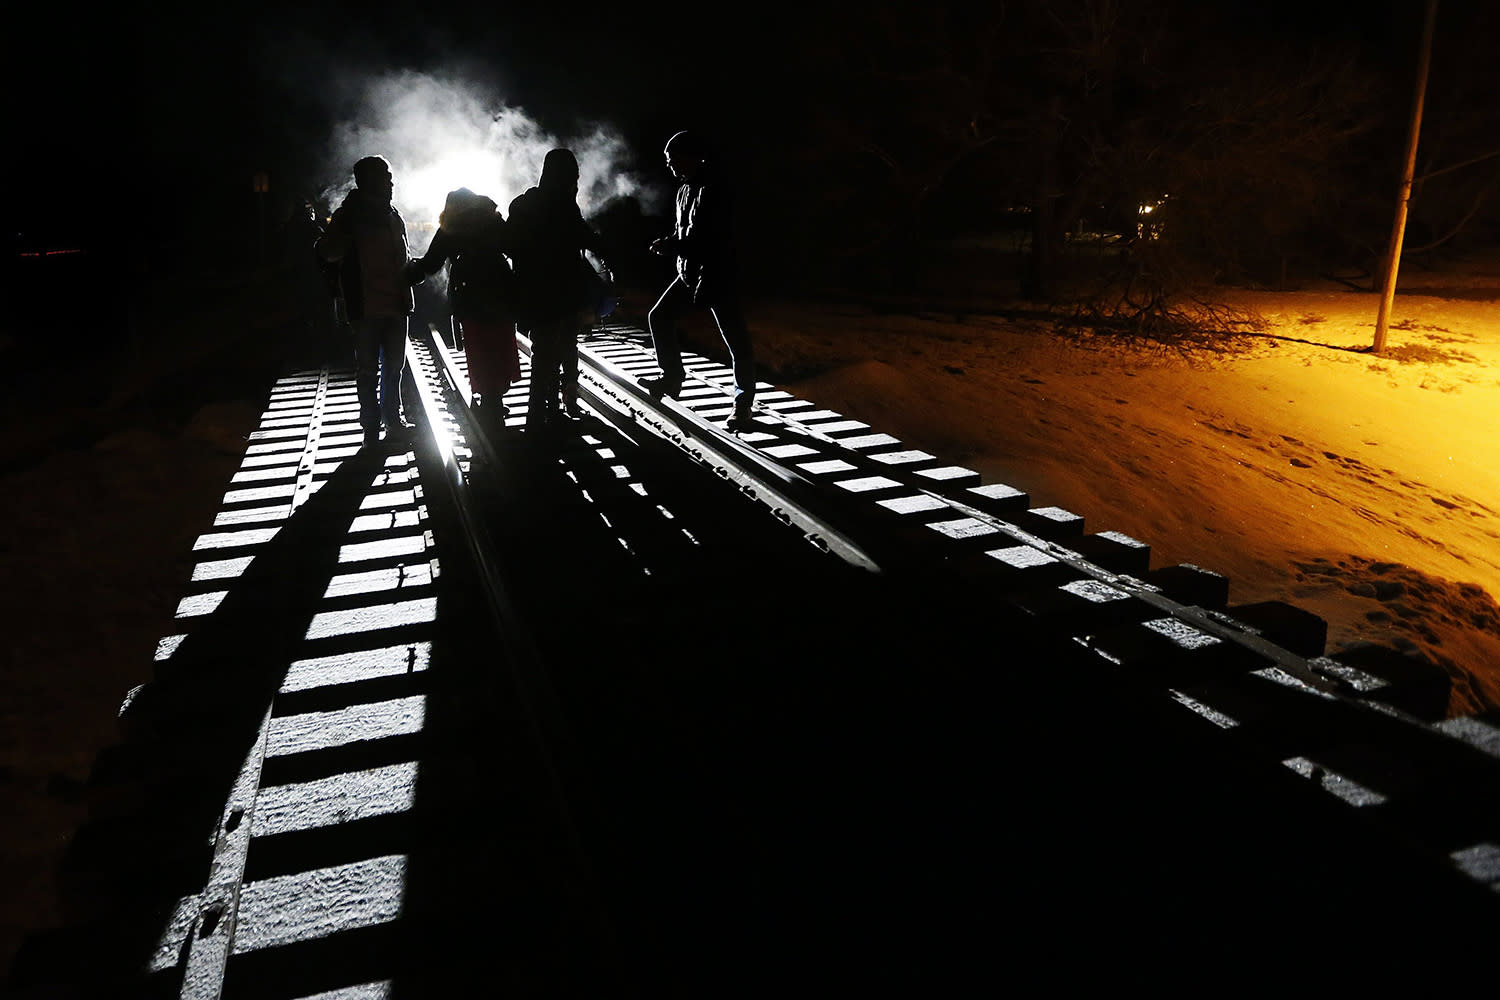 <p>Migrants from Somalia cross into Canada from the United States by walking down a train track early Sunday, Feb. 26, 2017, into the town of Emerson, Manitoba, where they will seek asylum at the Canada Border Services Agency. (Photo: John Woods/The Canadian Press via AP) </p>